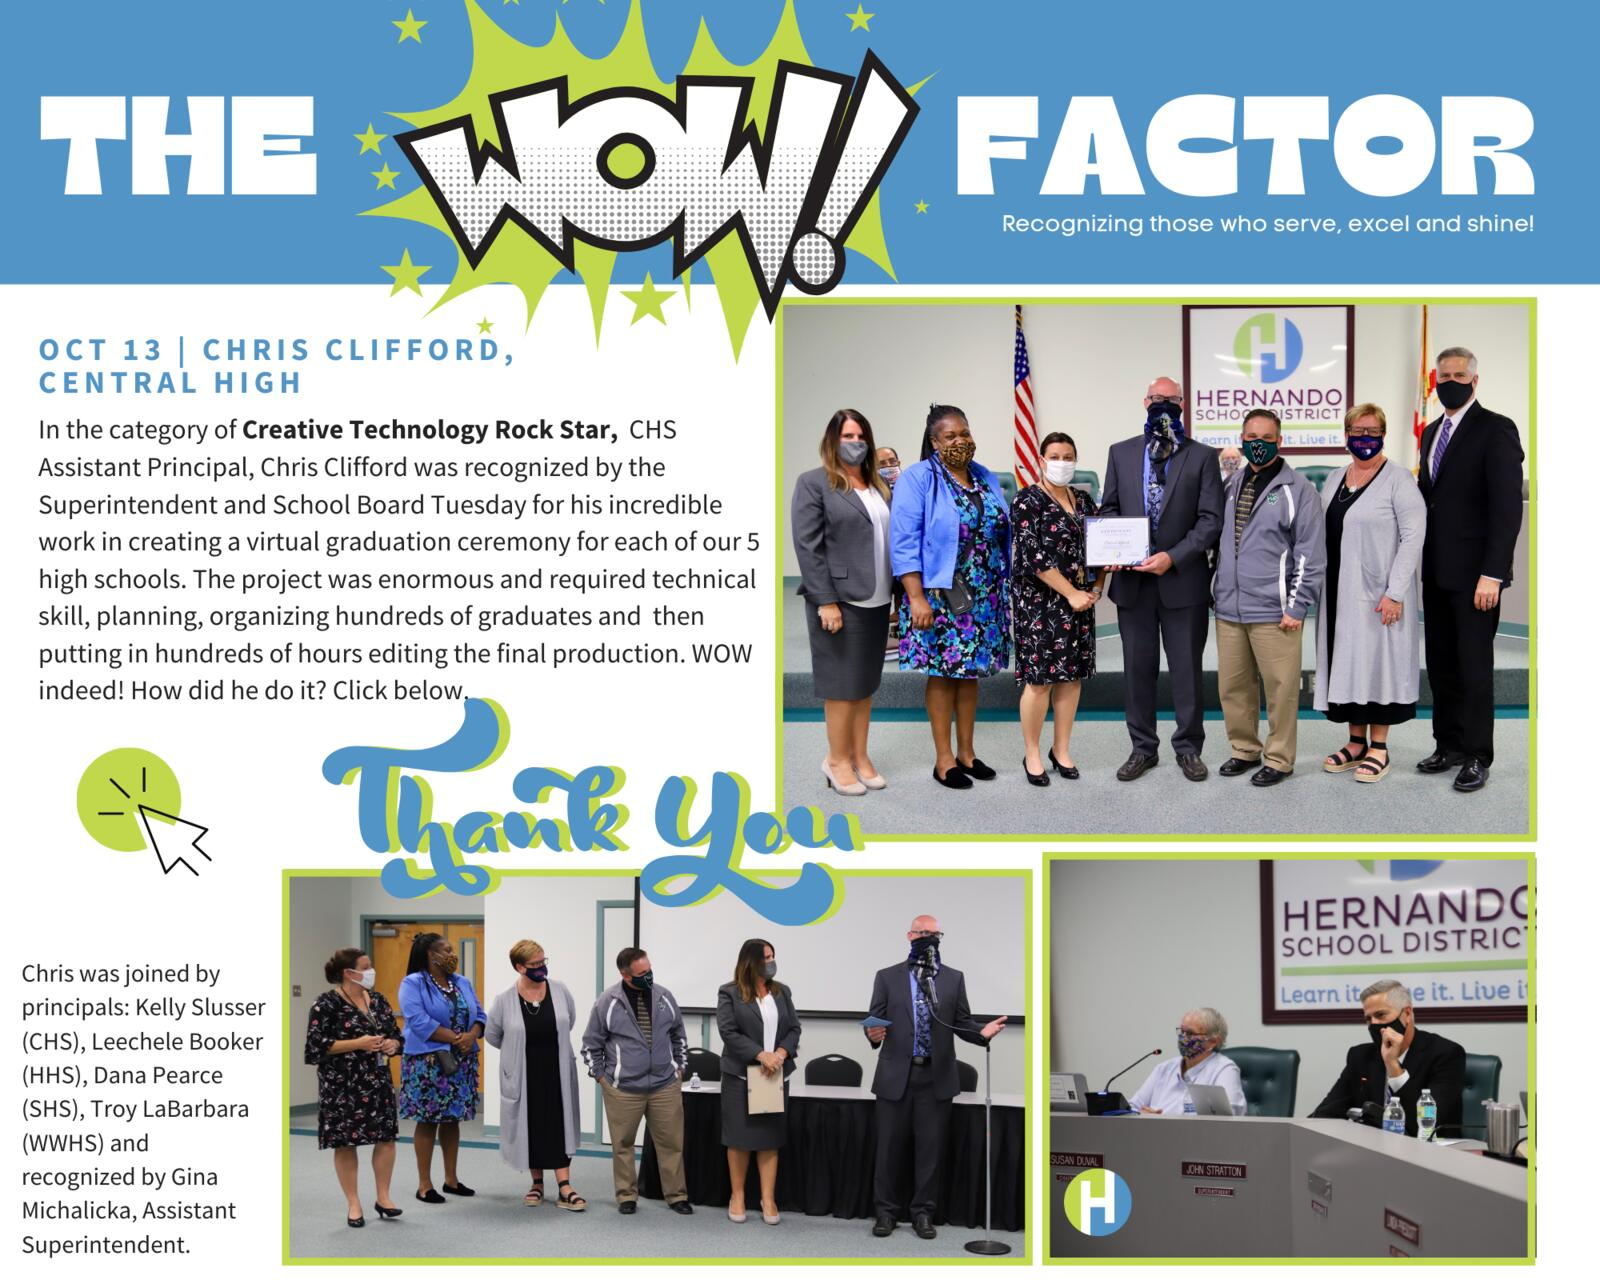 The WOW Factor - Cot. 13 - Chris Clifford